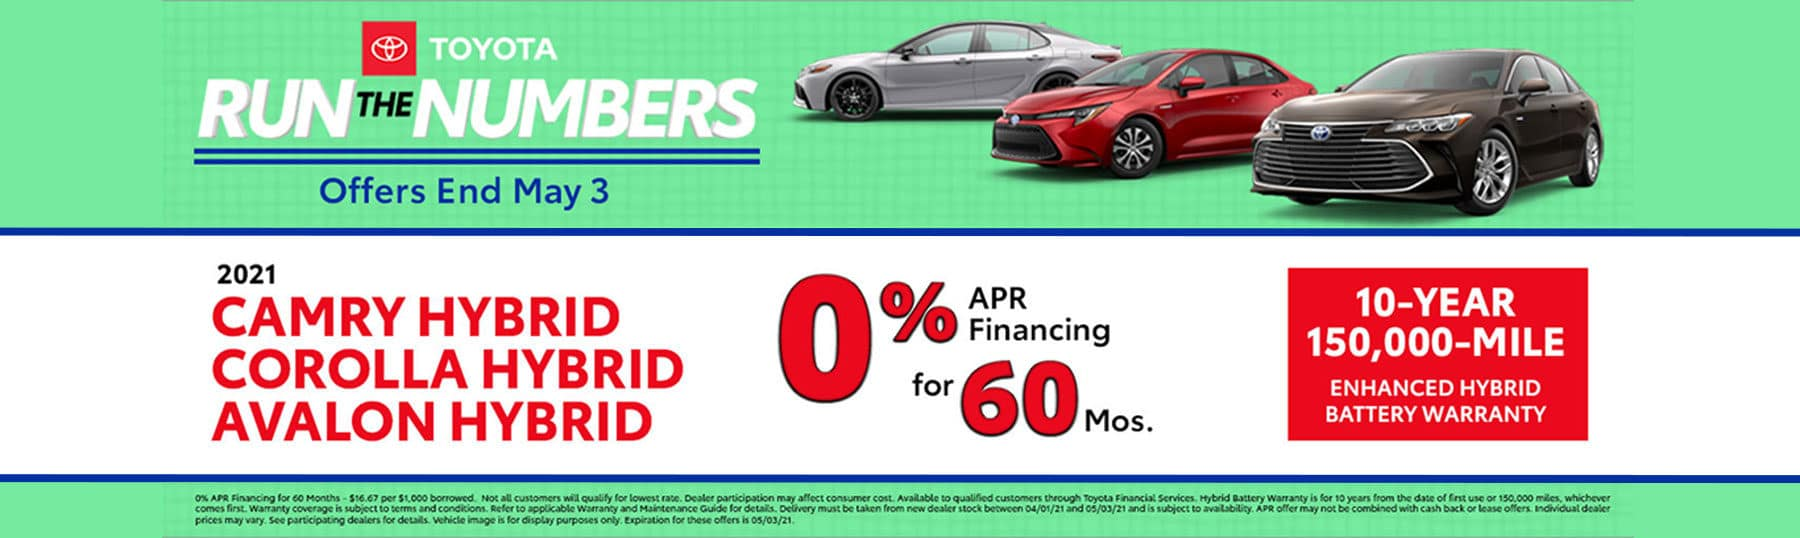 Toyota Run The Numbers - 0% APR Financing